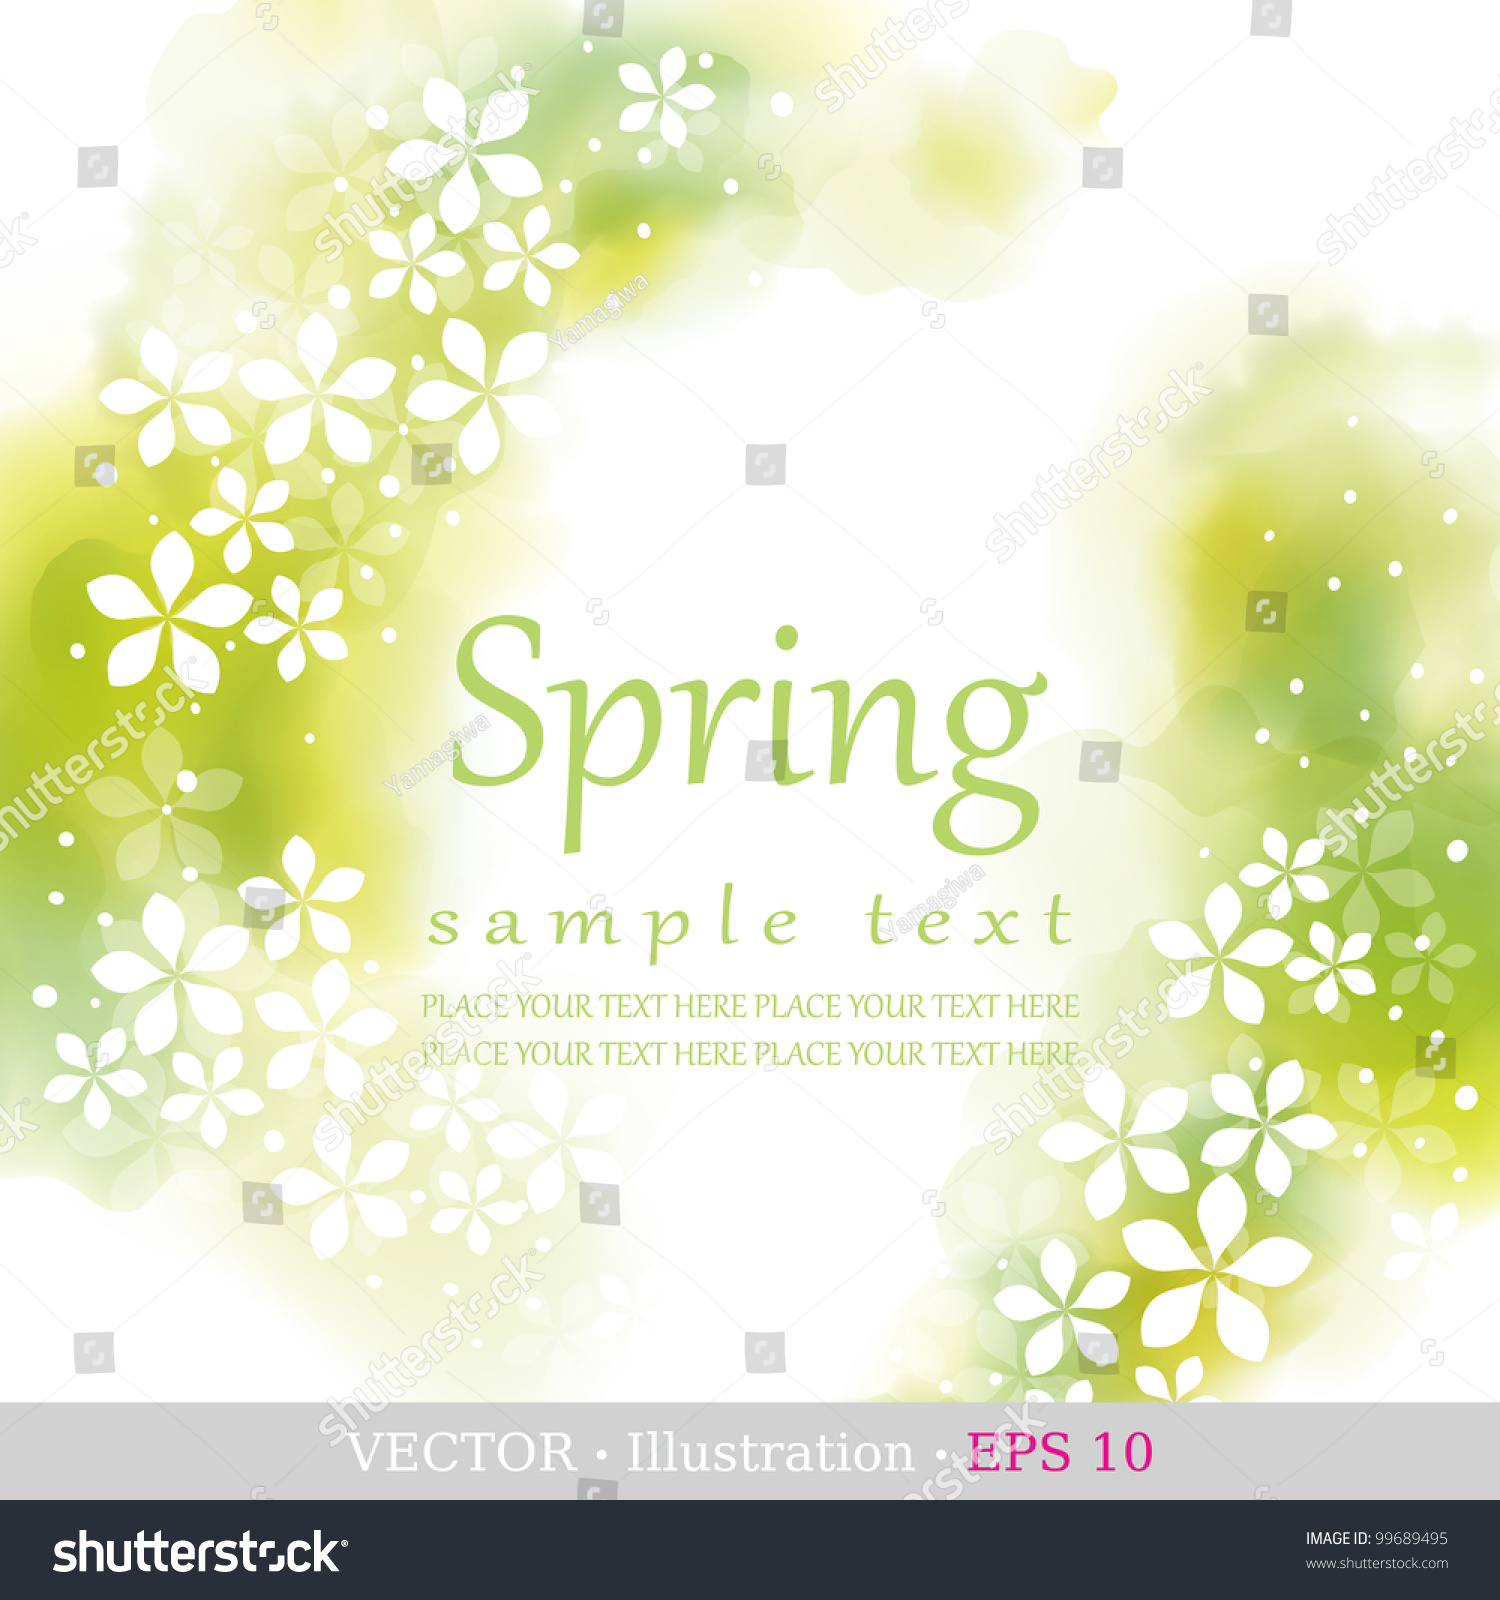 spring four seasons calendar days year stock vector  four seasons calendar days of the year cover of the title page colorful